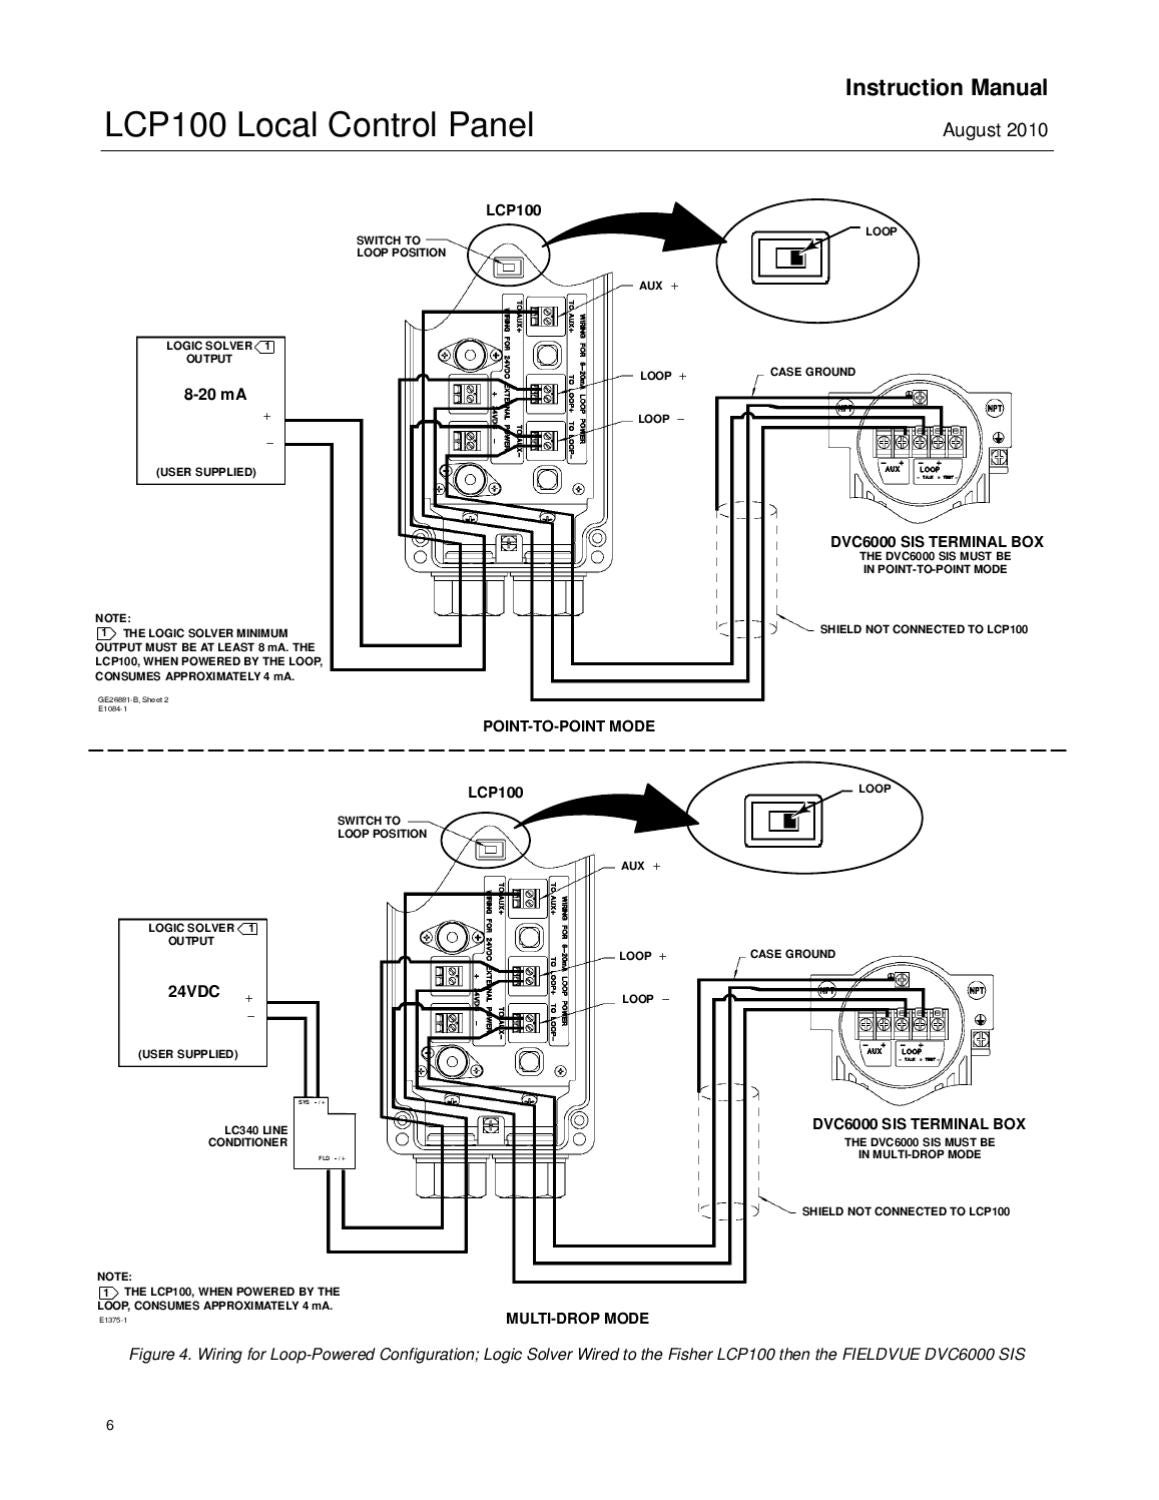 schlumberger instruct controller screen manual